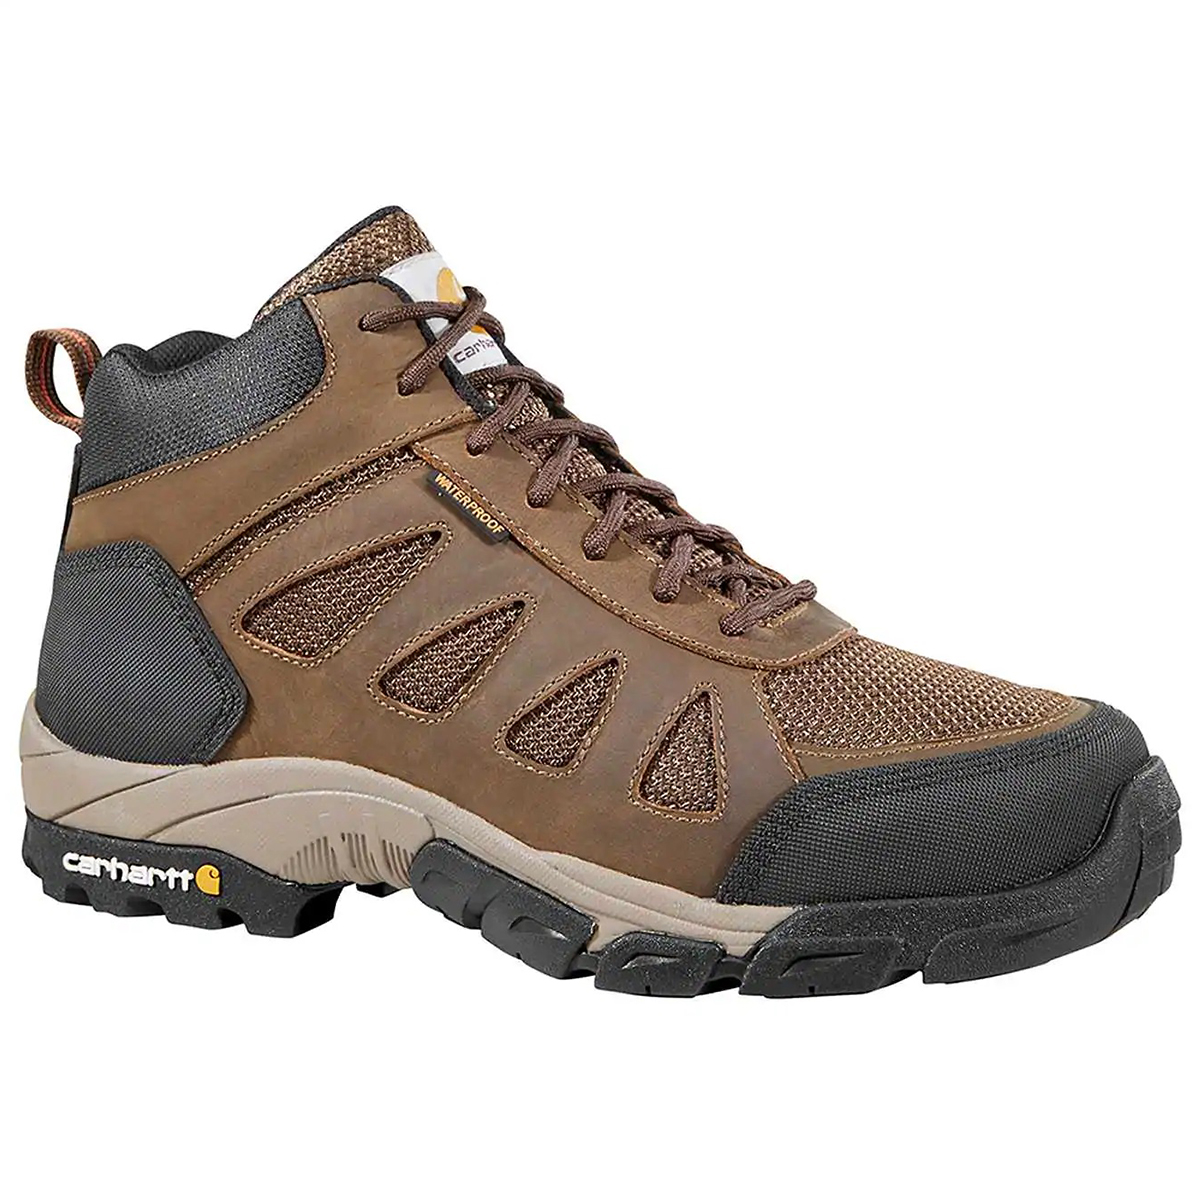 Carhartt Men's Lightweight Waterproof Hiking Work Boot - Brown, 8.5